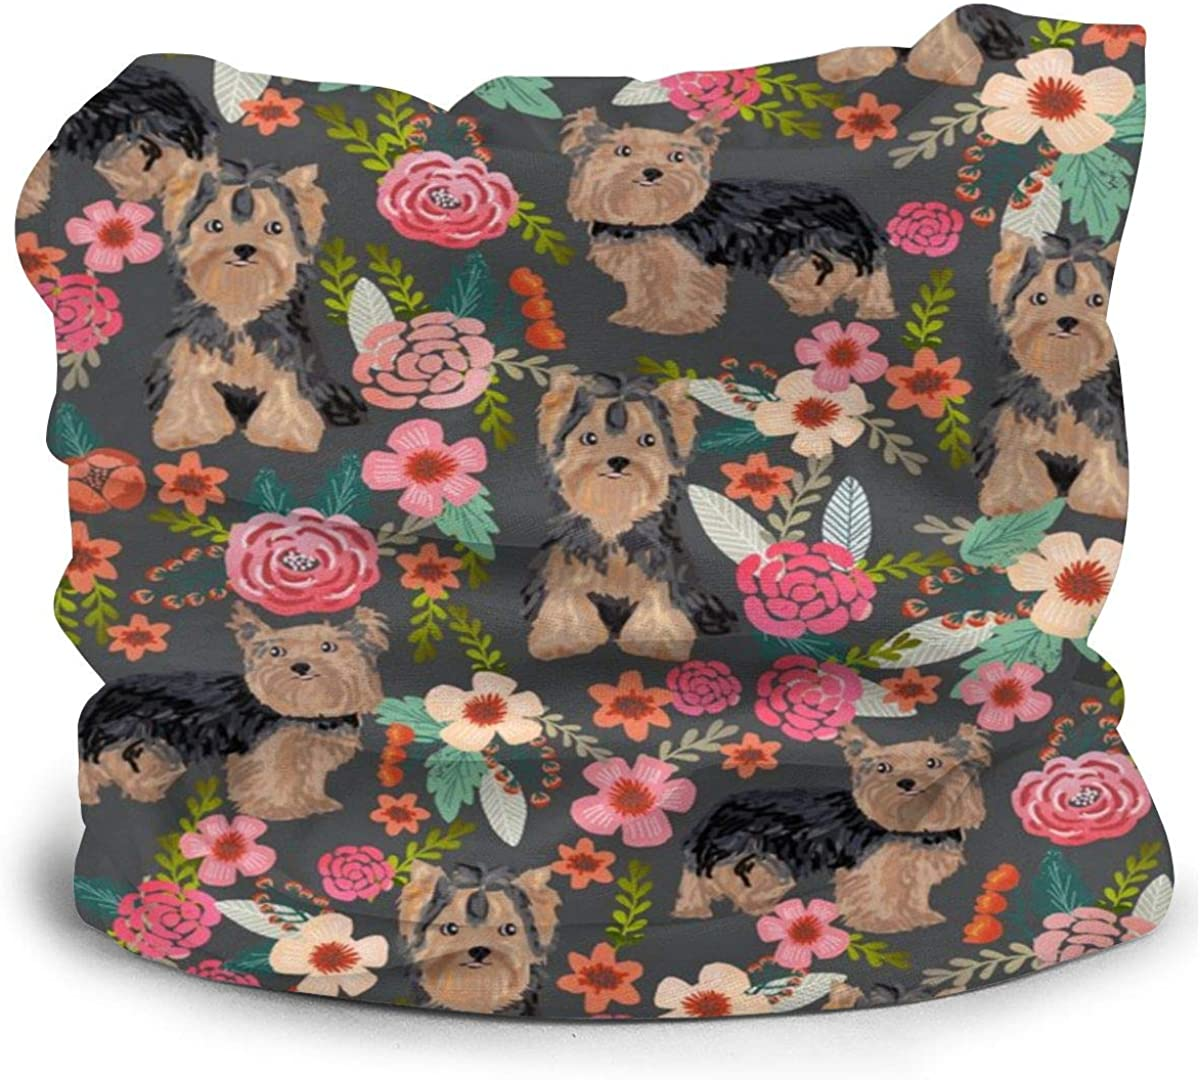 Yorkie Florals Yorkshire Terrier Floral Cute Dogs Kids Face Mask Dust Sun UV Protection Neck Gaiter Balaclava Face Cover Scarf Summer Breathable for Cycling Fishing Outdoors